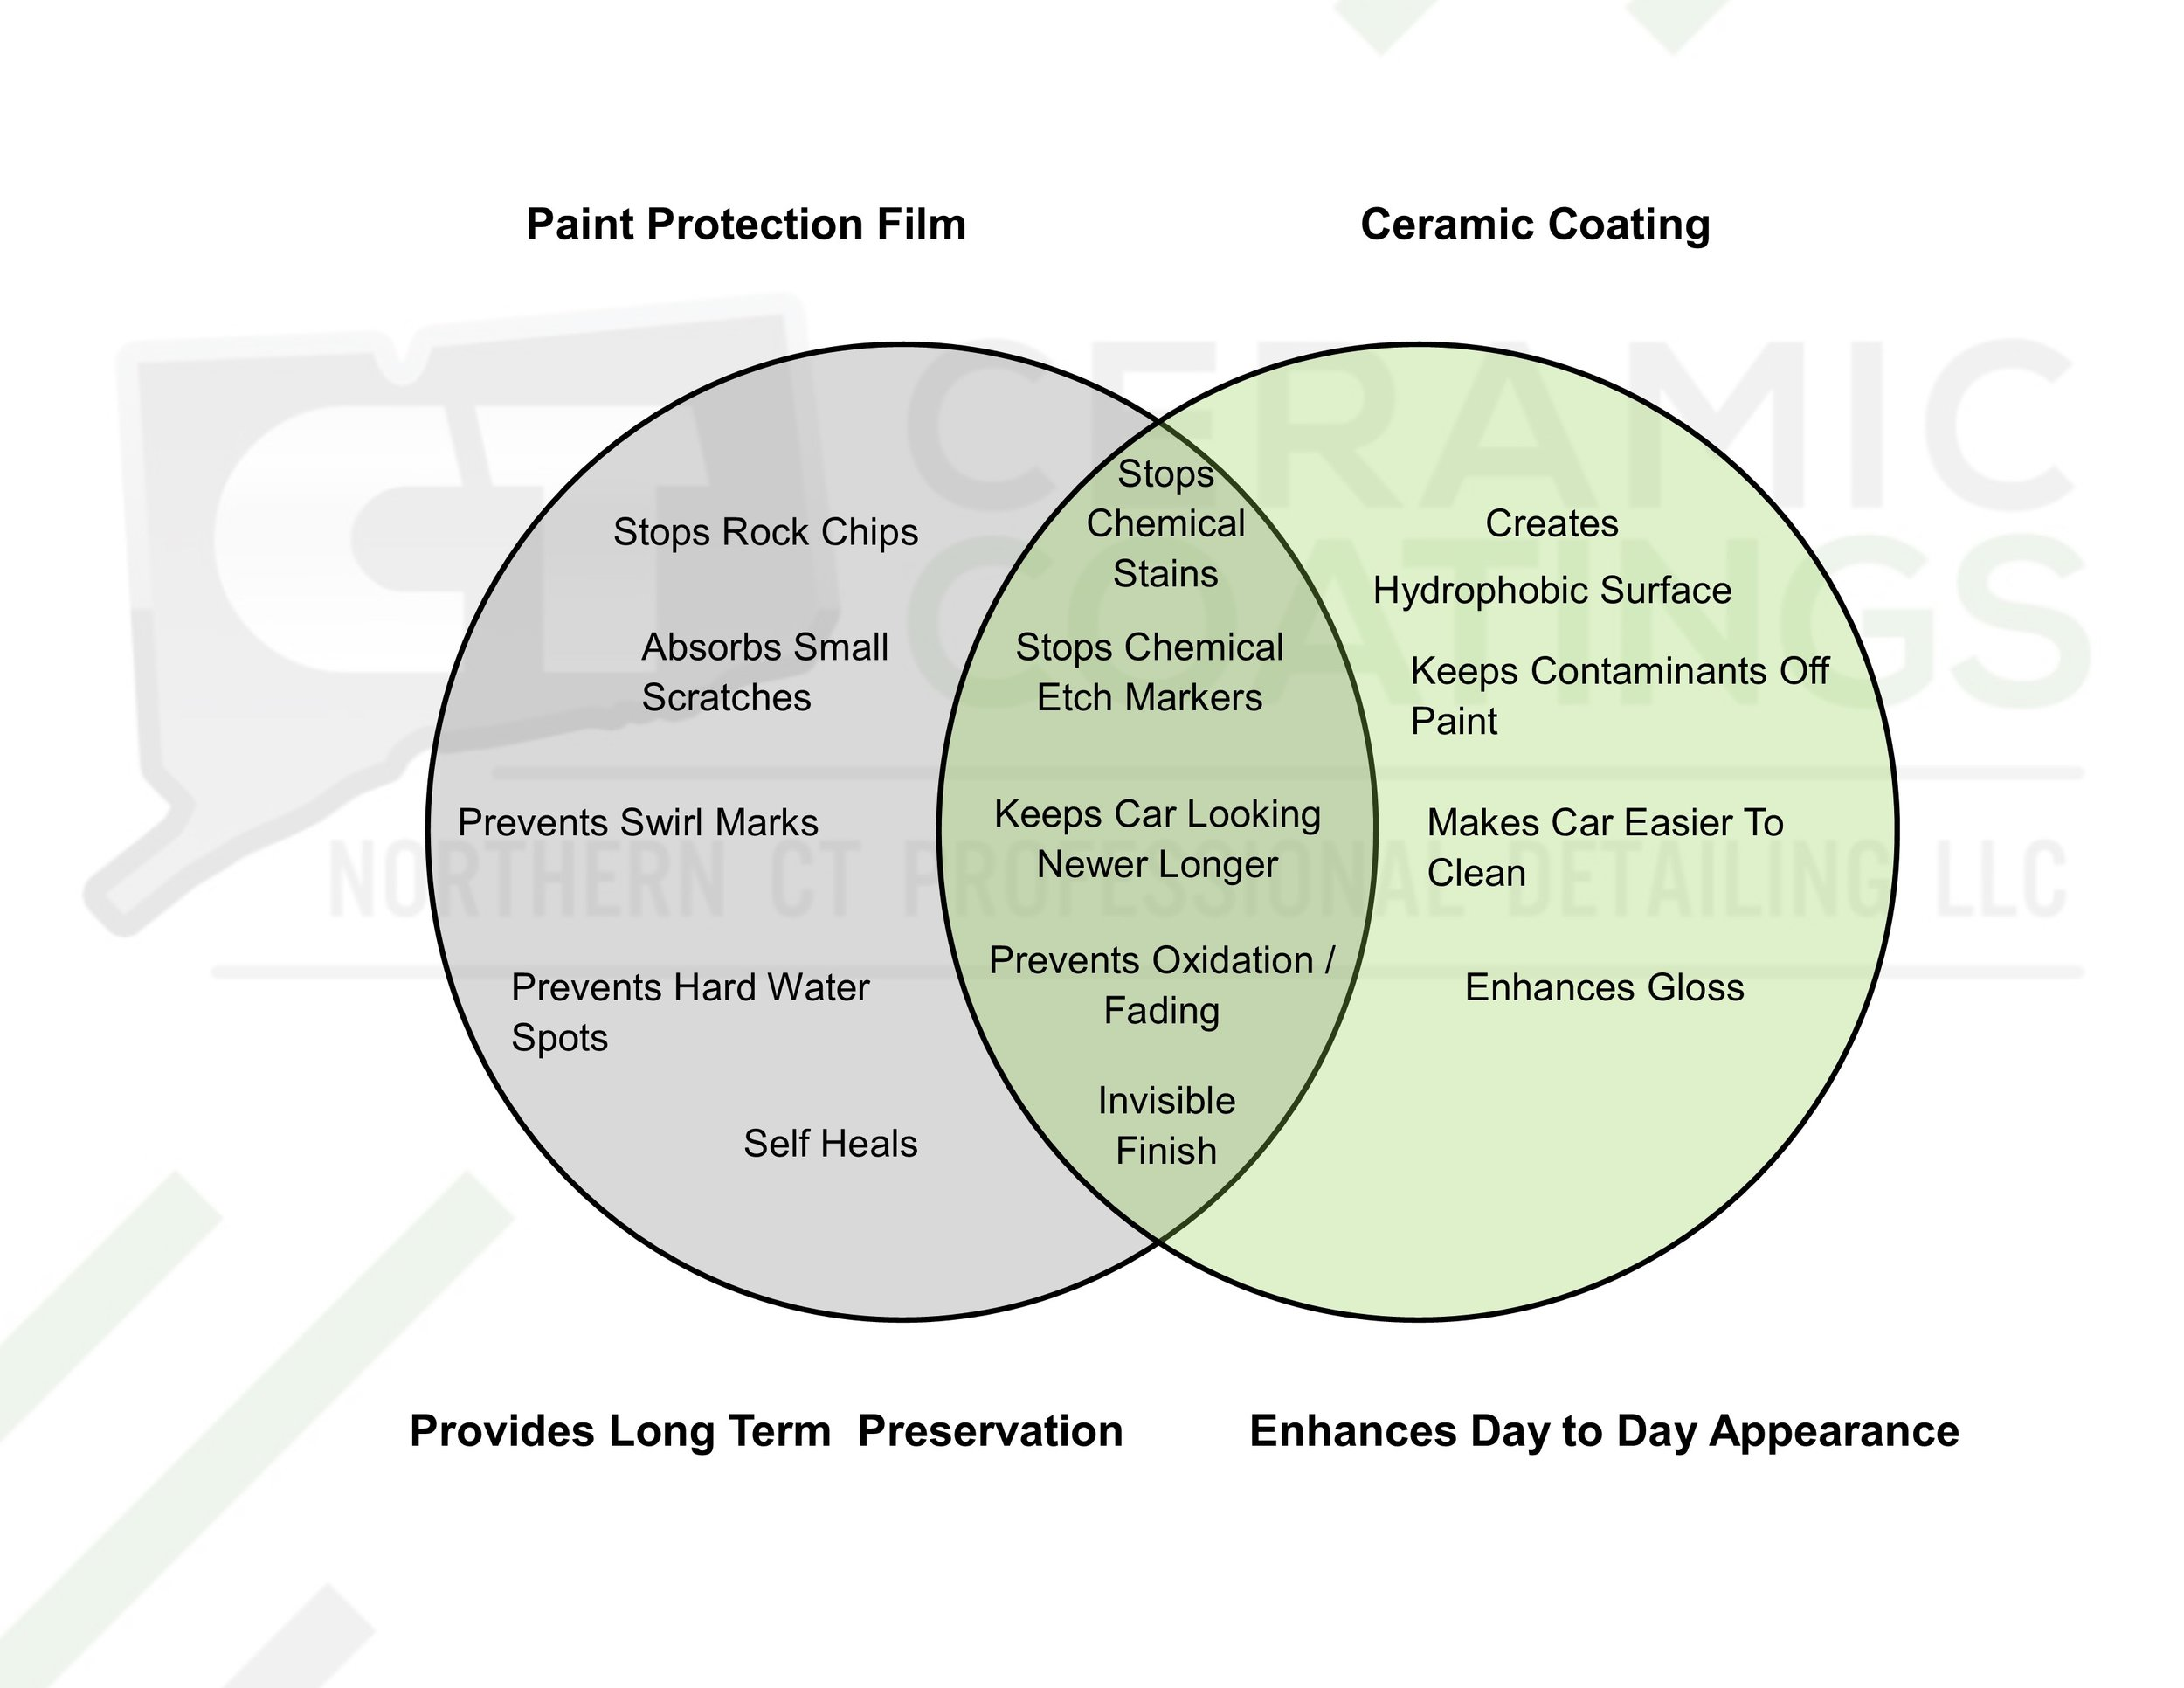 Paint Protection Film and Ceramic Coatings